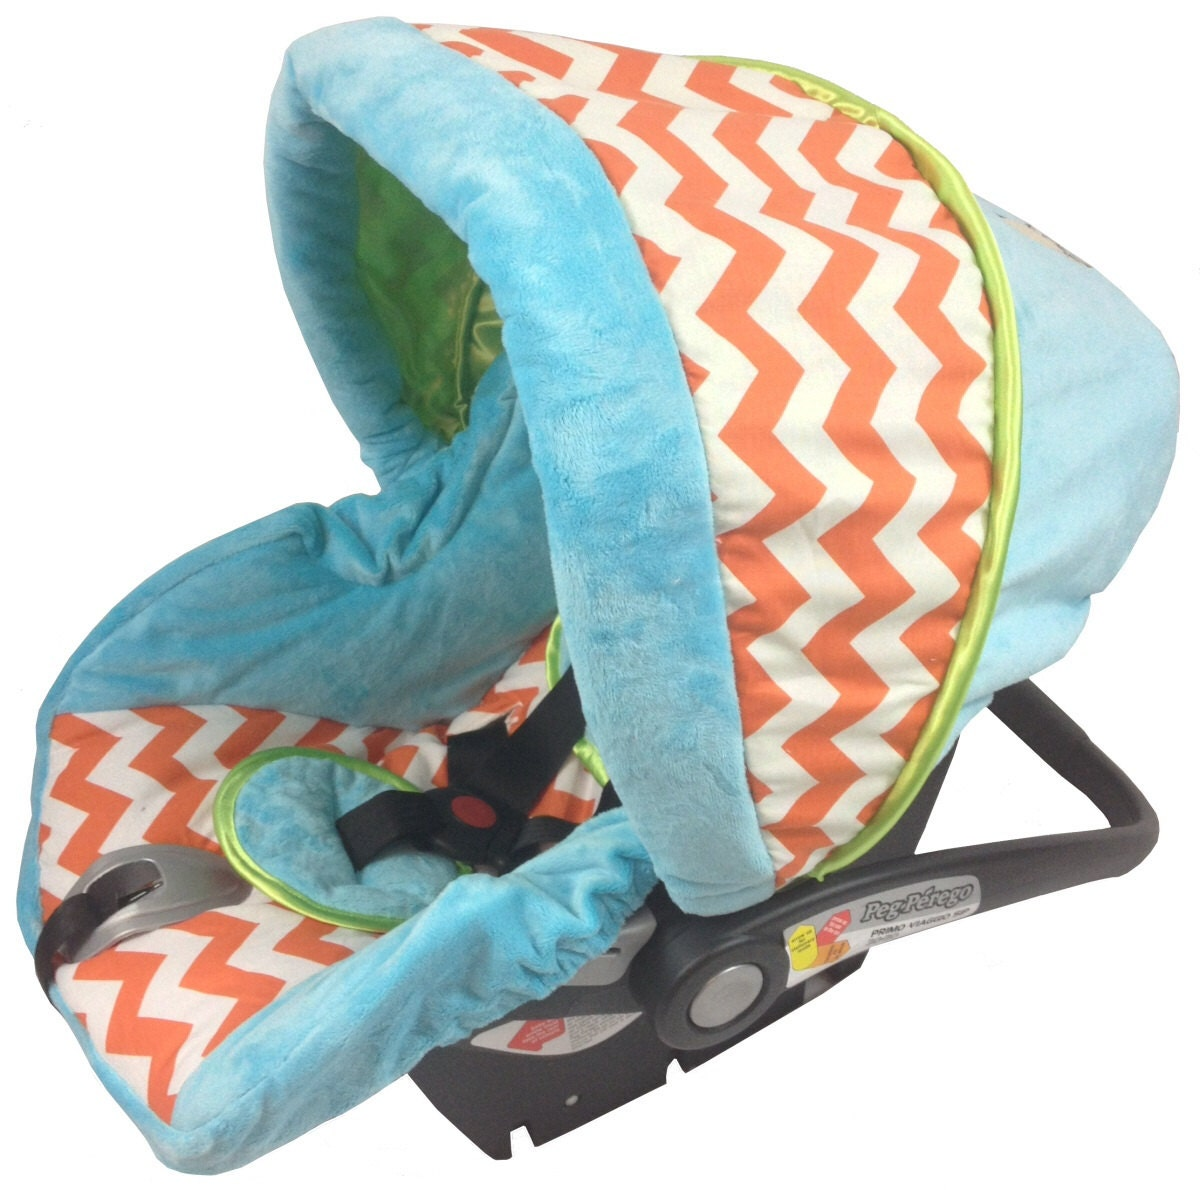 Baby Boy Custom Car Seat Cover Replacement By